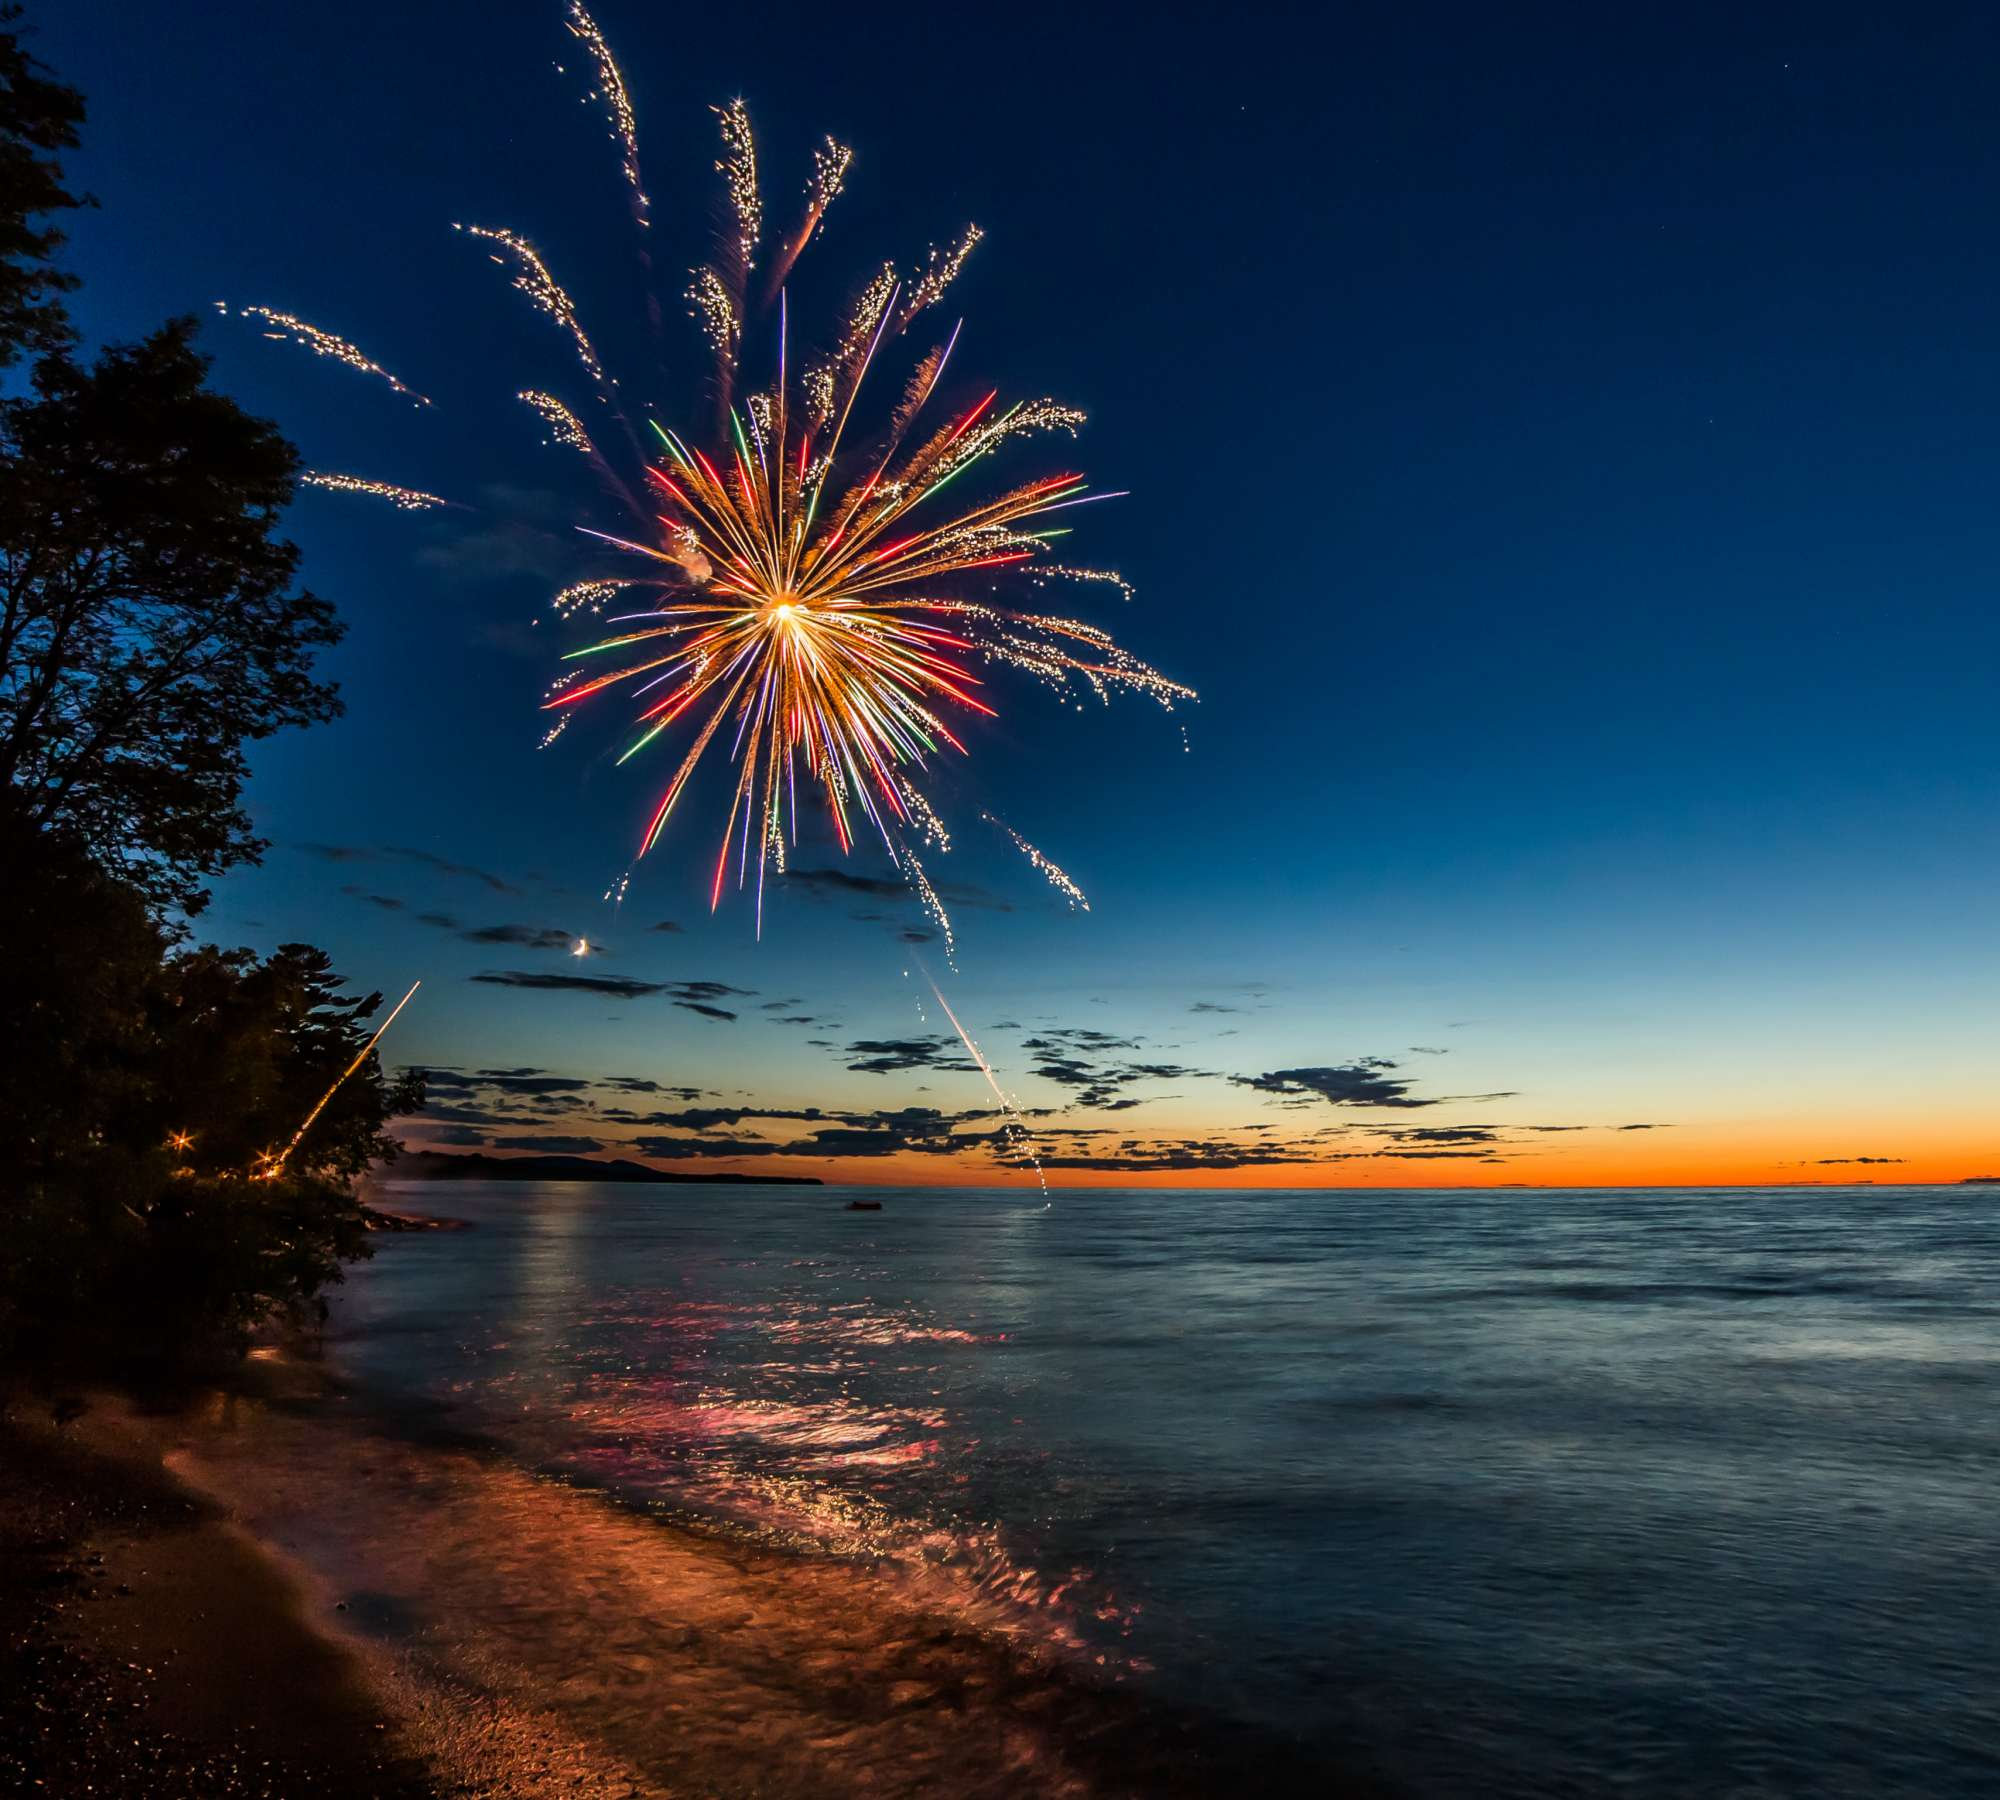 A firework over water in the Upper Peninsula